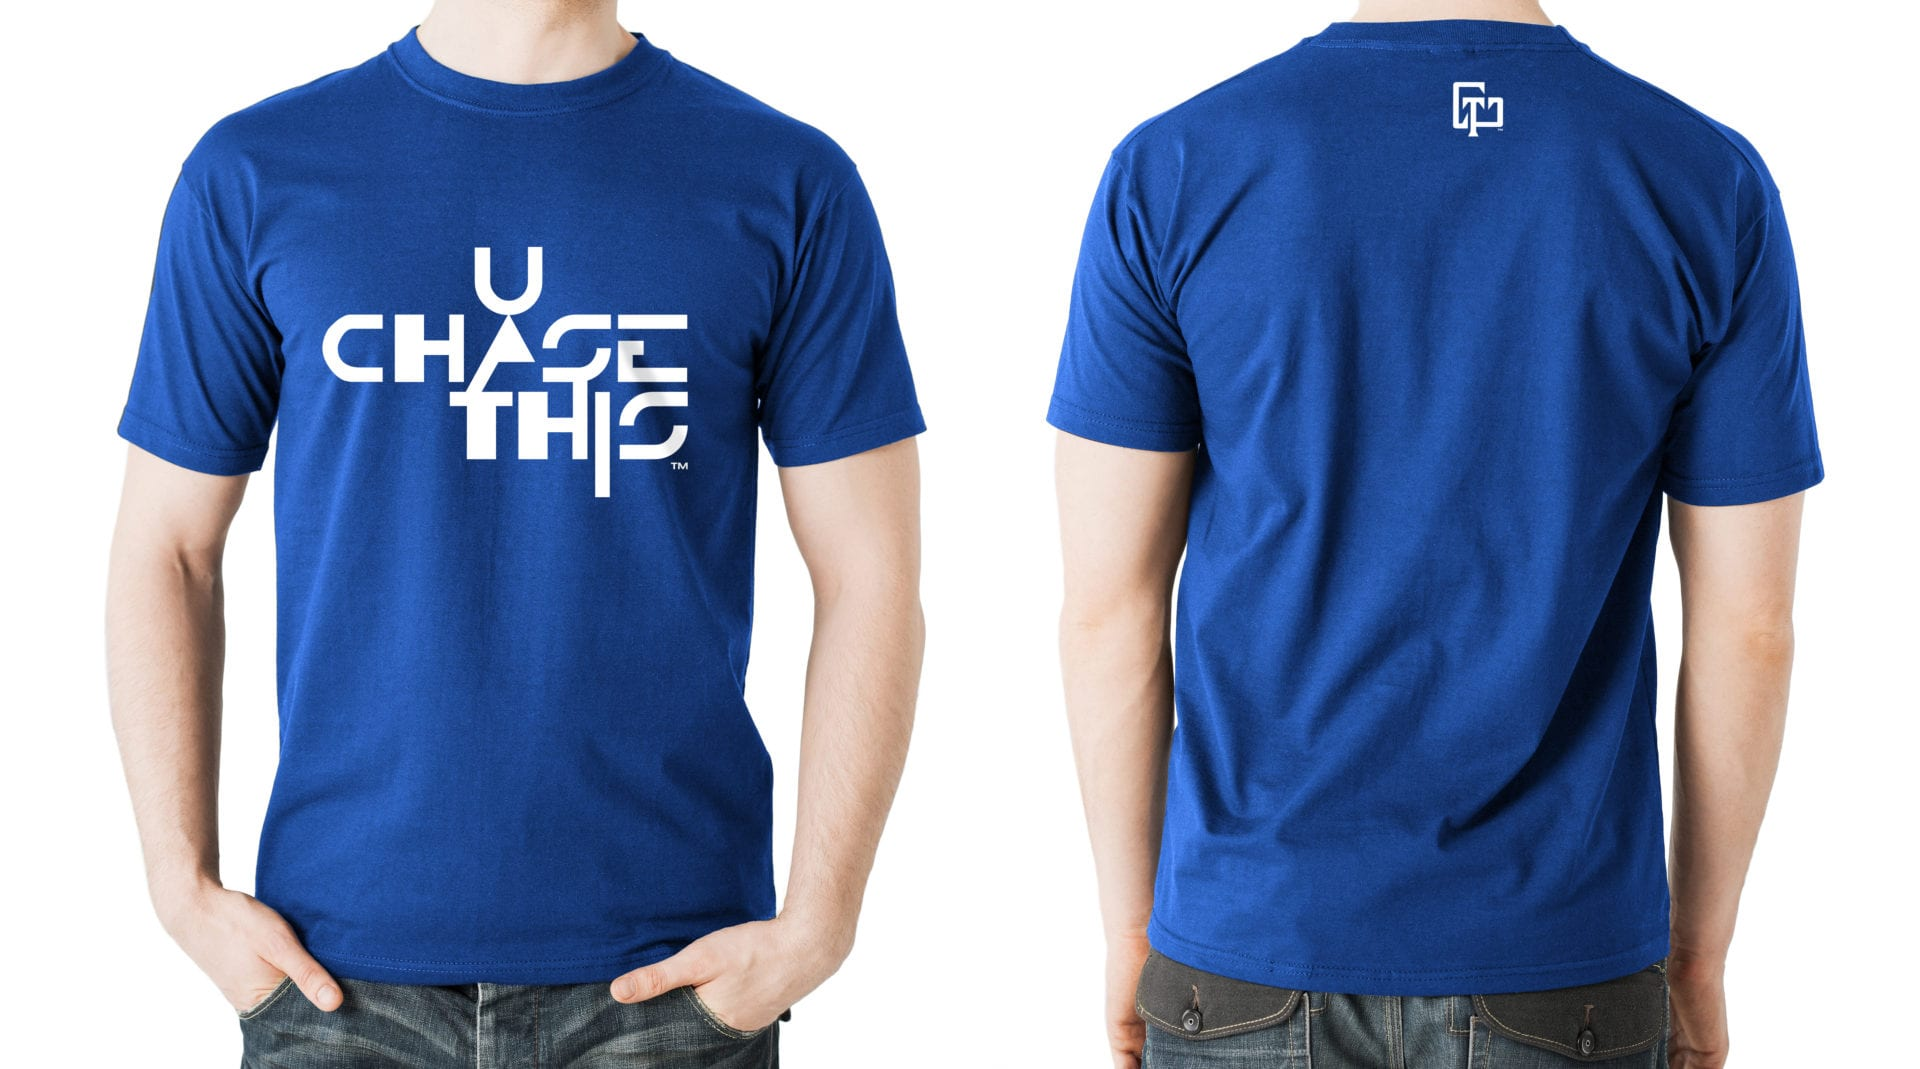 Another t-shirt design in blue